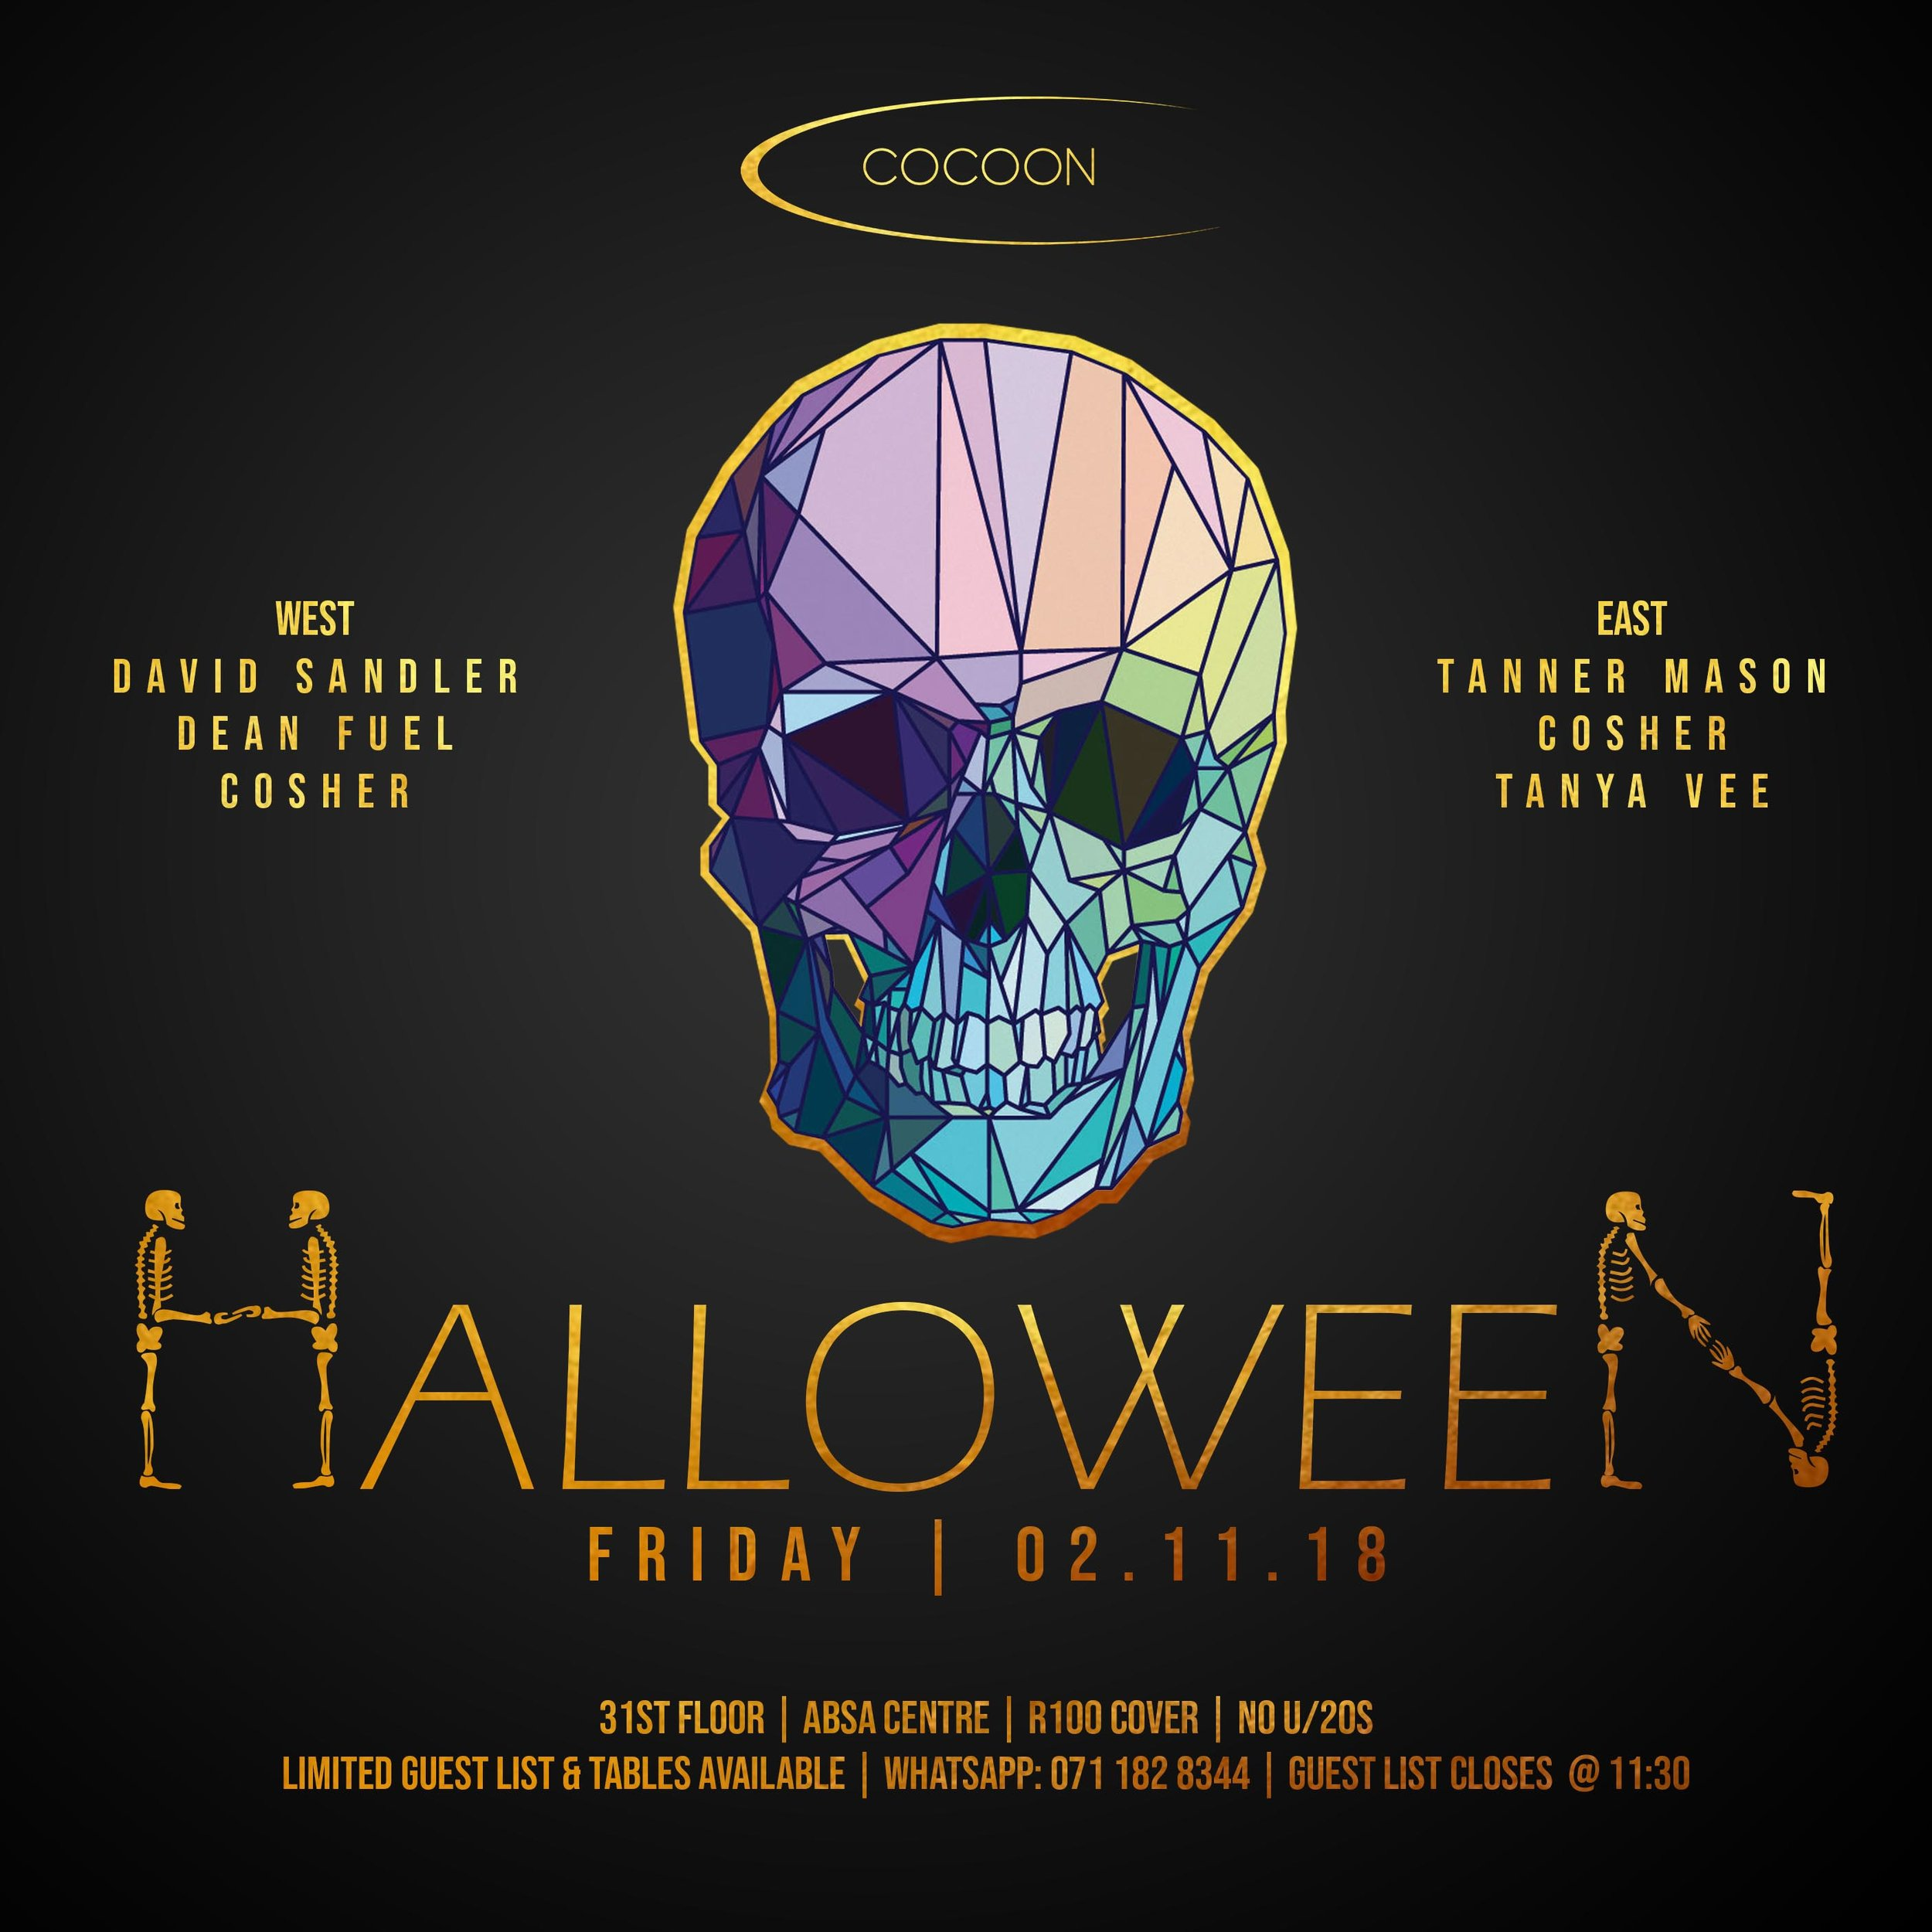 This Friday, we're celebrating Halloween in style!  The best dressed group on the night will receive a complimentary bottle and mixers!